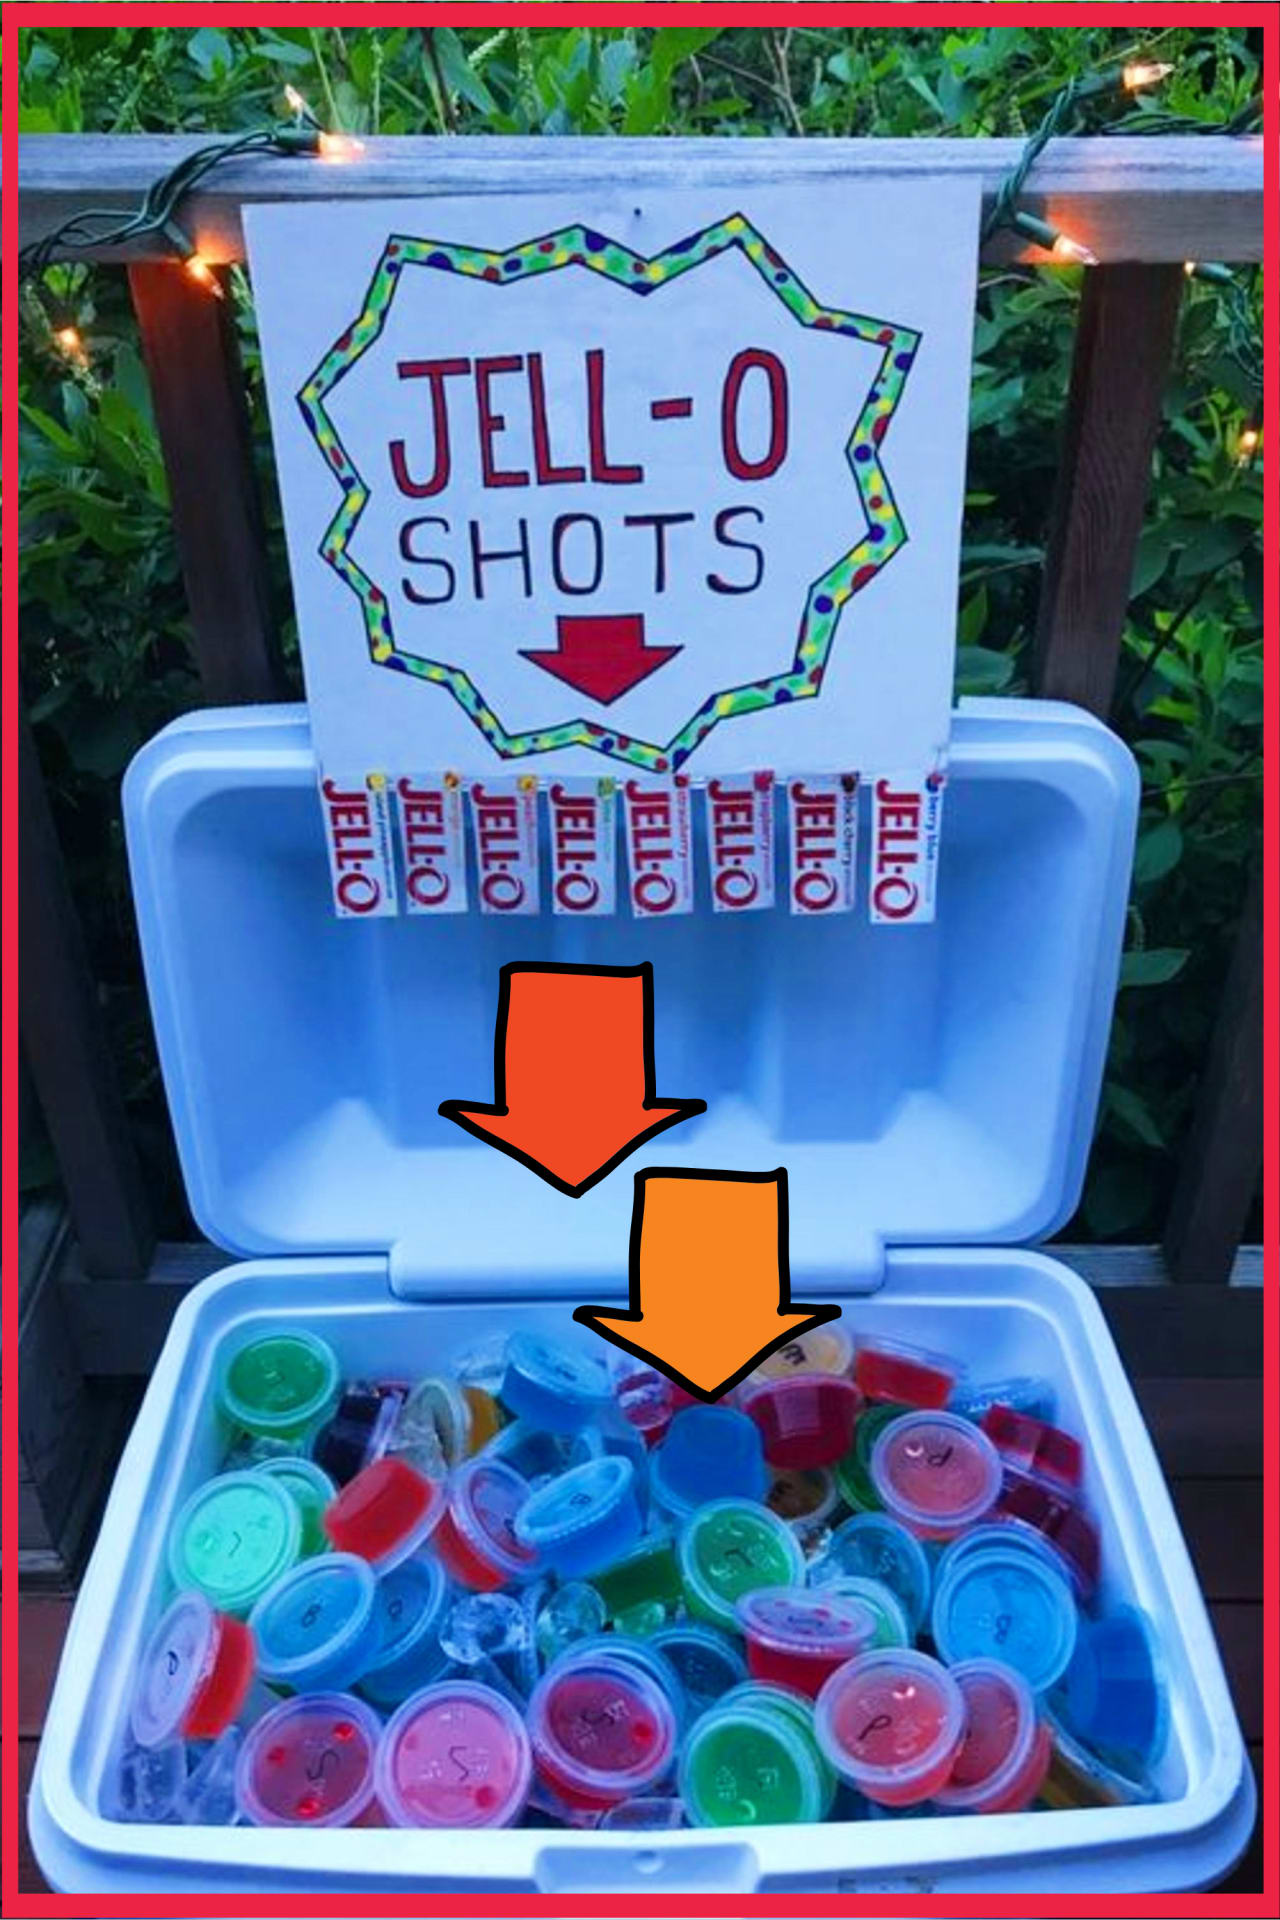 Cookout ideas - outdoor party, BBQ party, beach party (spring break!) Jello shots cooler ideas - summer party ideas